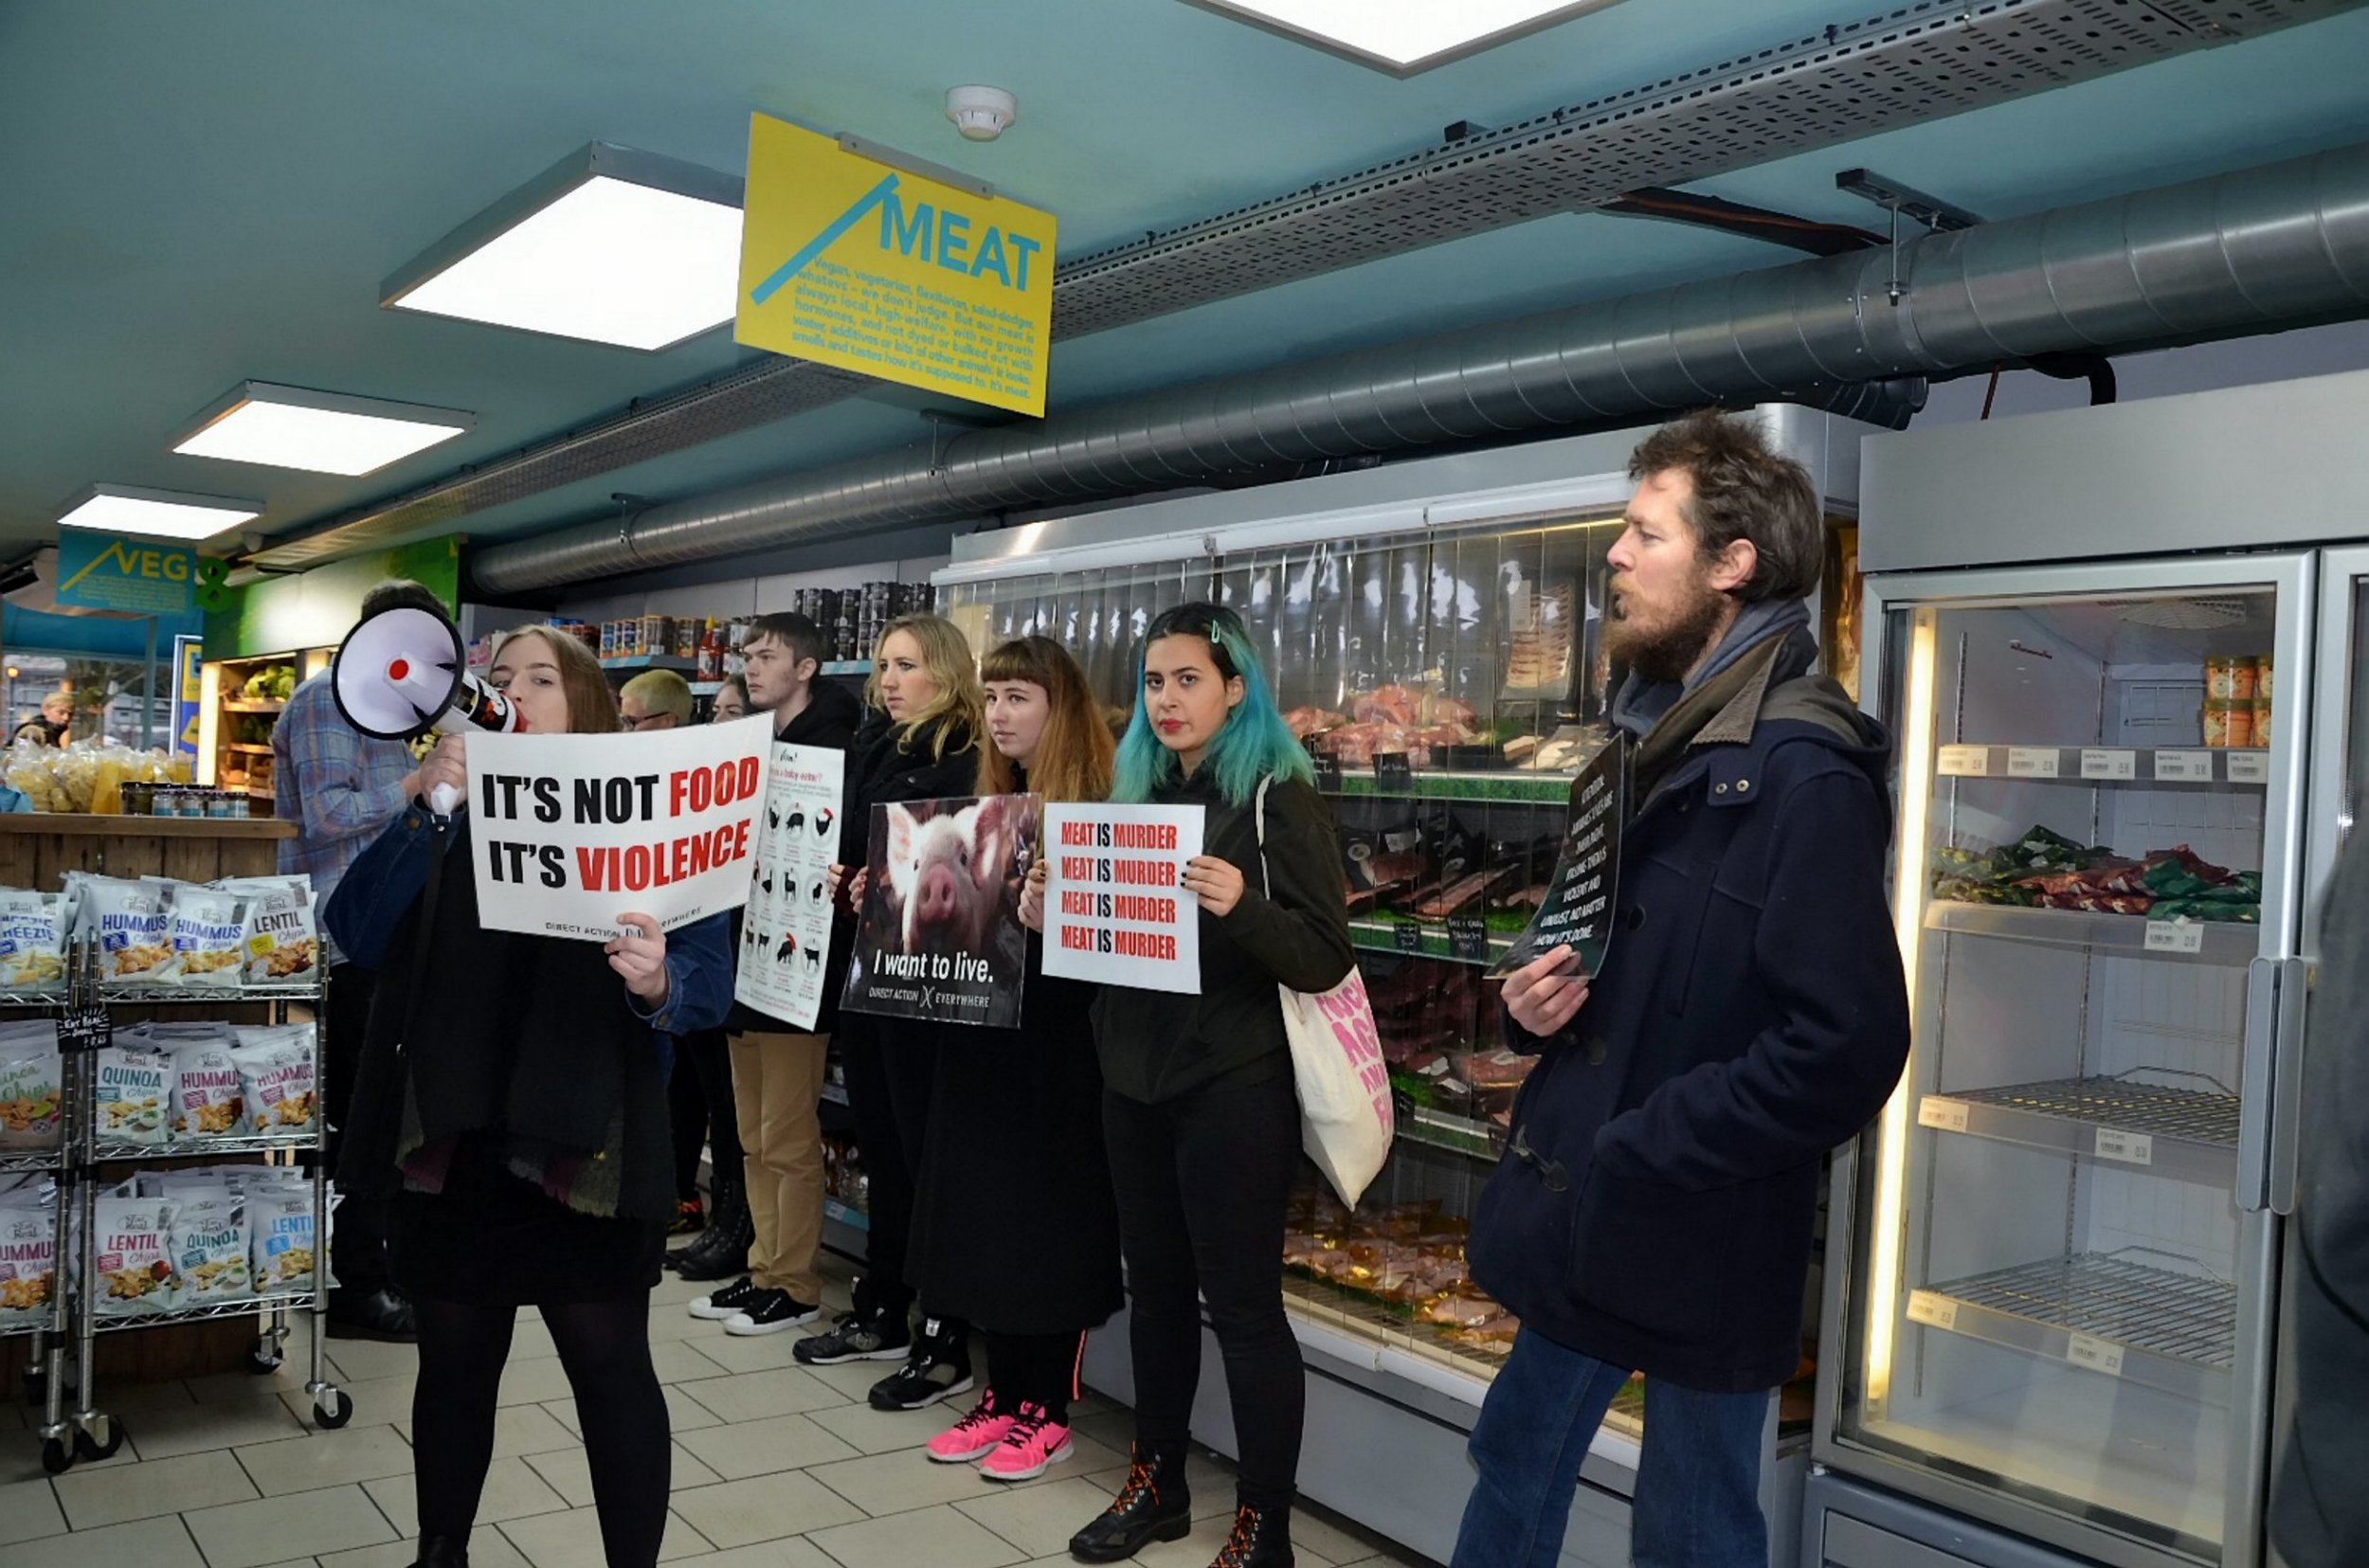 Vegan activists storm an ethical supermarket in Brighton, East Sussex, after learning it sold milk and eggs. .See National News story Nnvegans. Vegan activists stormed a hipster ethical supermarket because they were unhappy about it selling eggs and milk.Hisbe sustainable food shop works with farms where animals are treated with care and respect and sells locally sourced and free range produce.But the supermarket in Brighton, East Sussex, was targeted by Direct Action Everywhere (DxE) who intimidated staff and customers inside when they shouted at them through megaphones.The international grassroots group accused the business of 'unethical' practices and 'false advertising' because it claims to sell 'happy' meat.